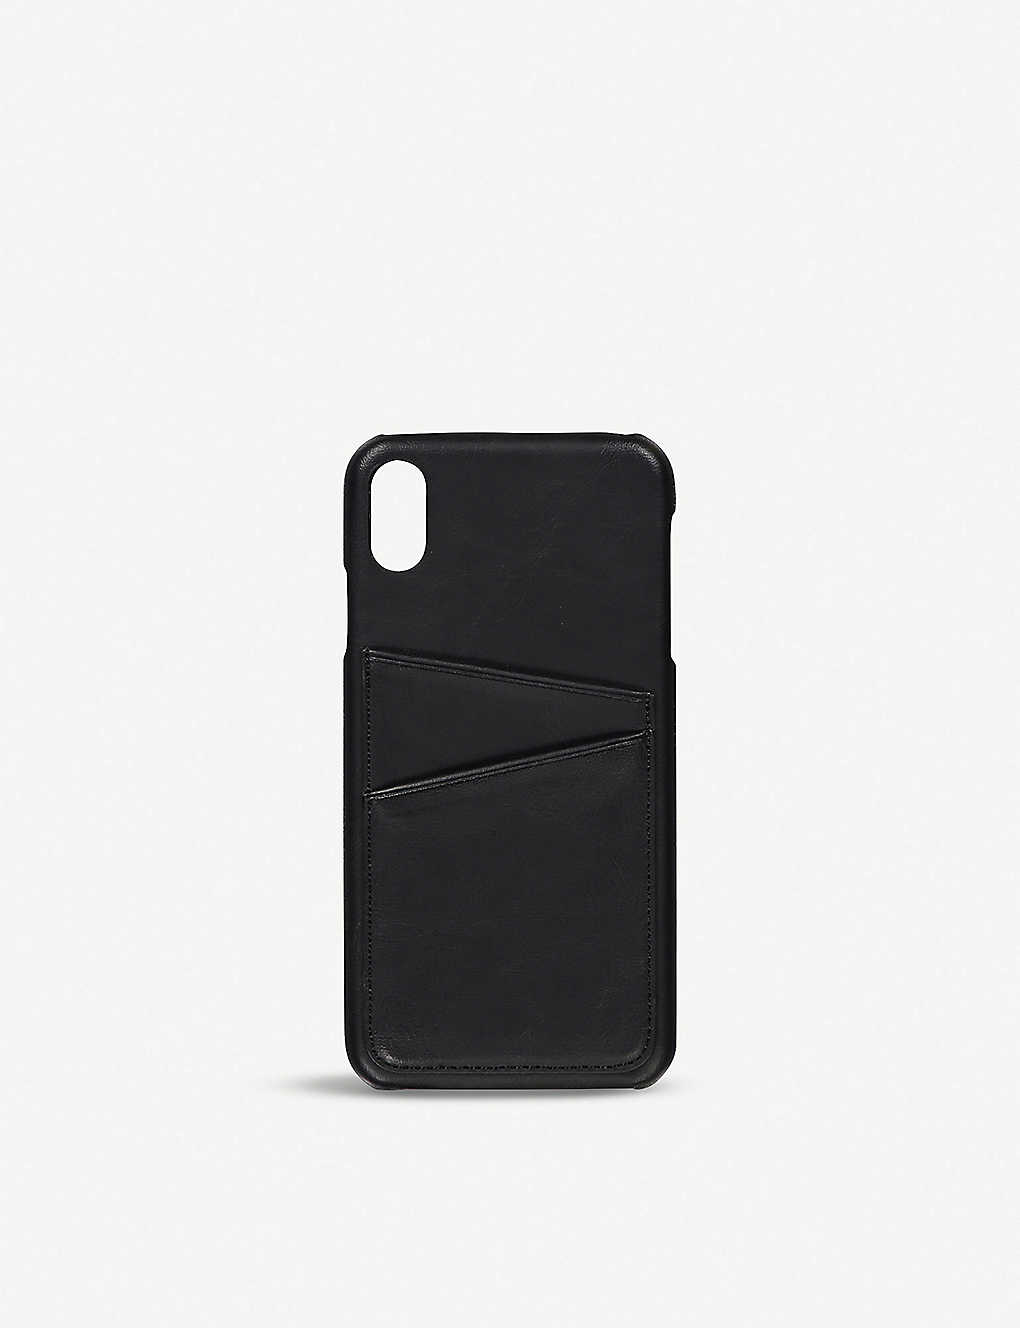 VICTORIA MIRO: The Cardholder iPhone 6,7,8 phone cover